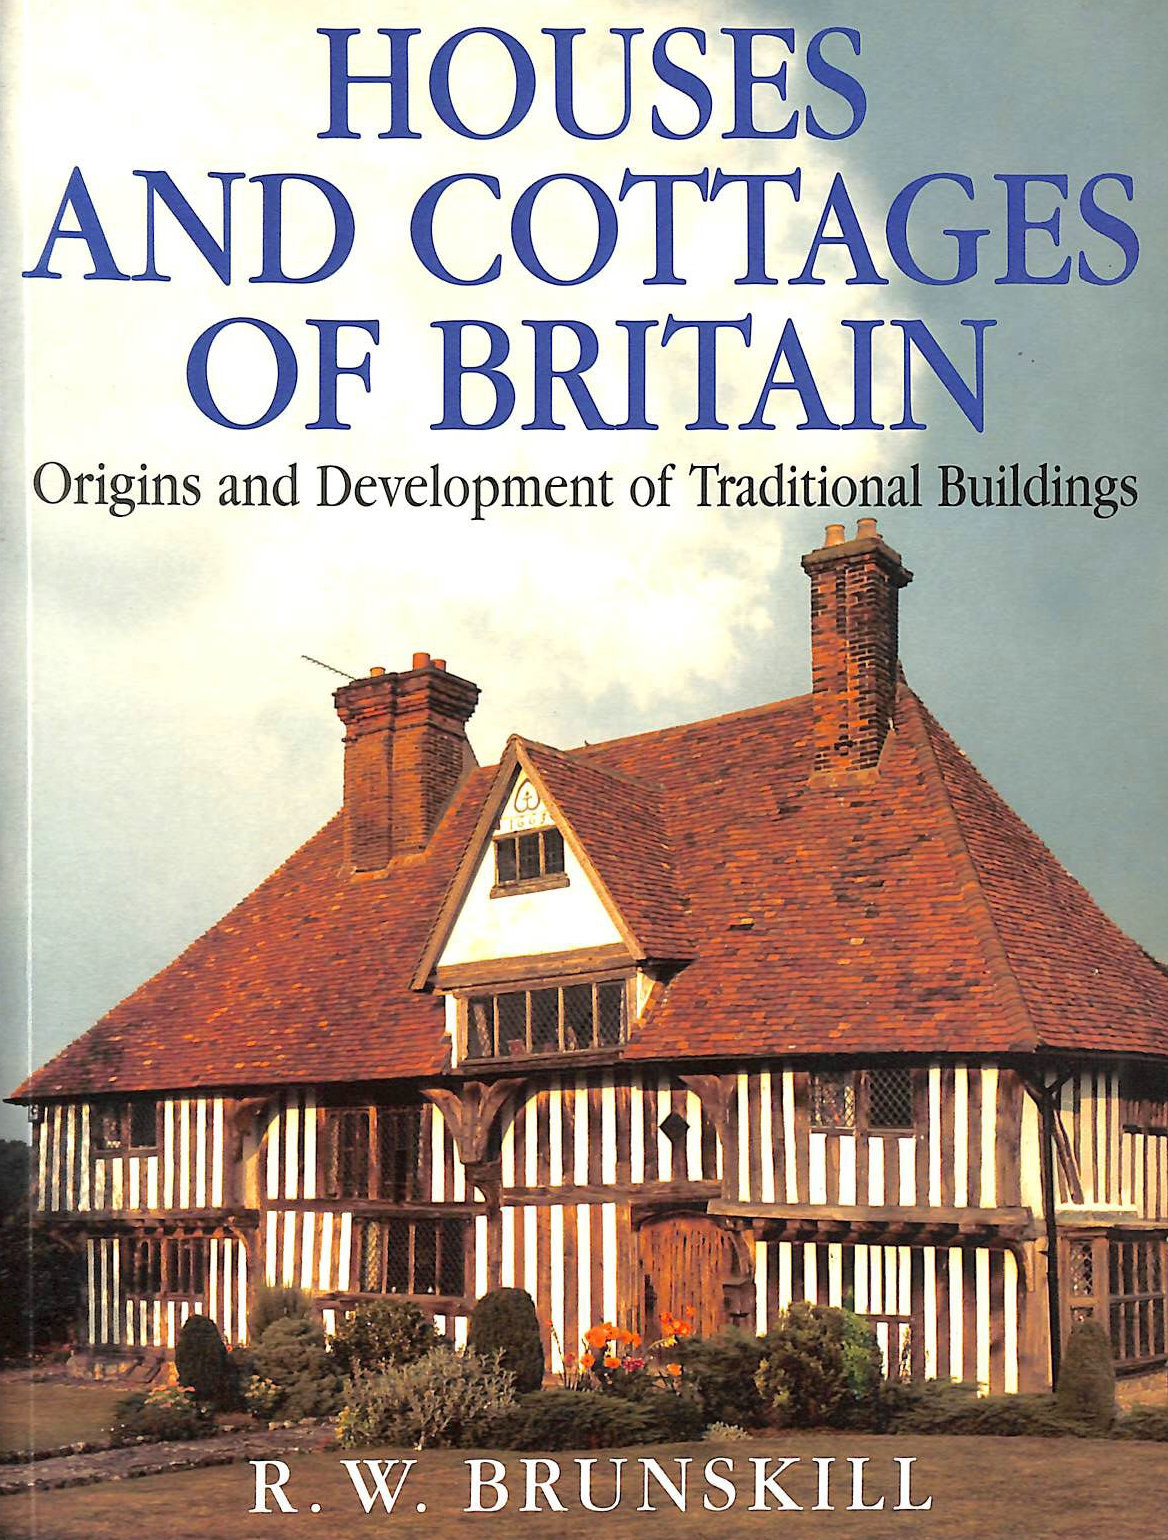 Image for Houses And Cottages Of Great Britain: Origins and Development of Traditional Buildings